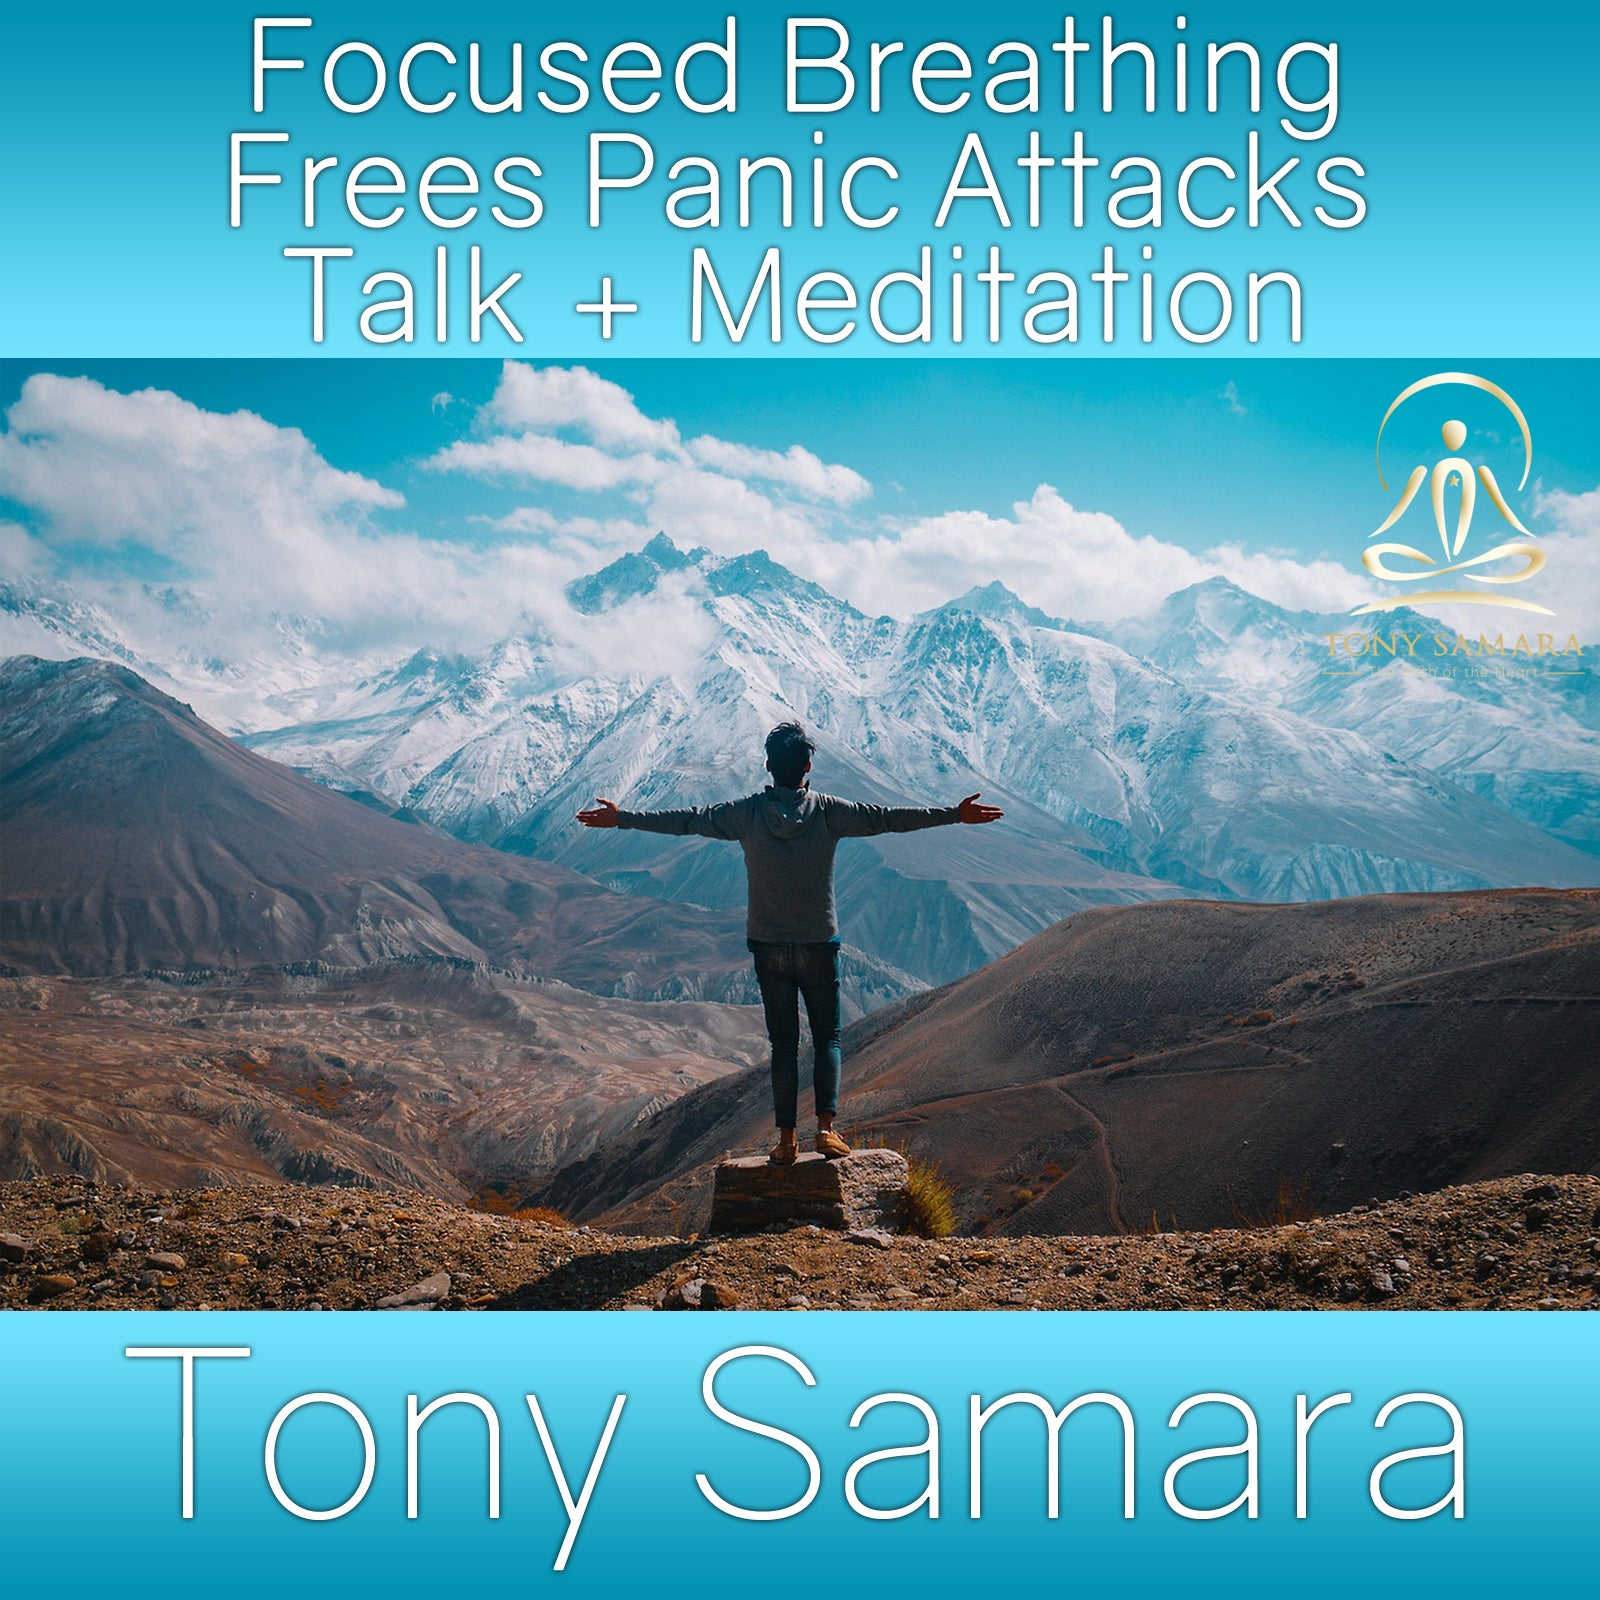 Focused Breathing Frees Panic Attacks Talk + Meditation (MP3 Audio Download) - Tony Samara Meditation